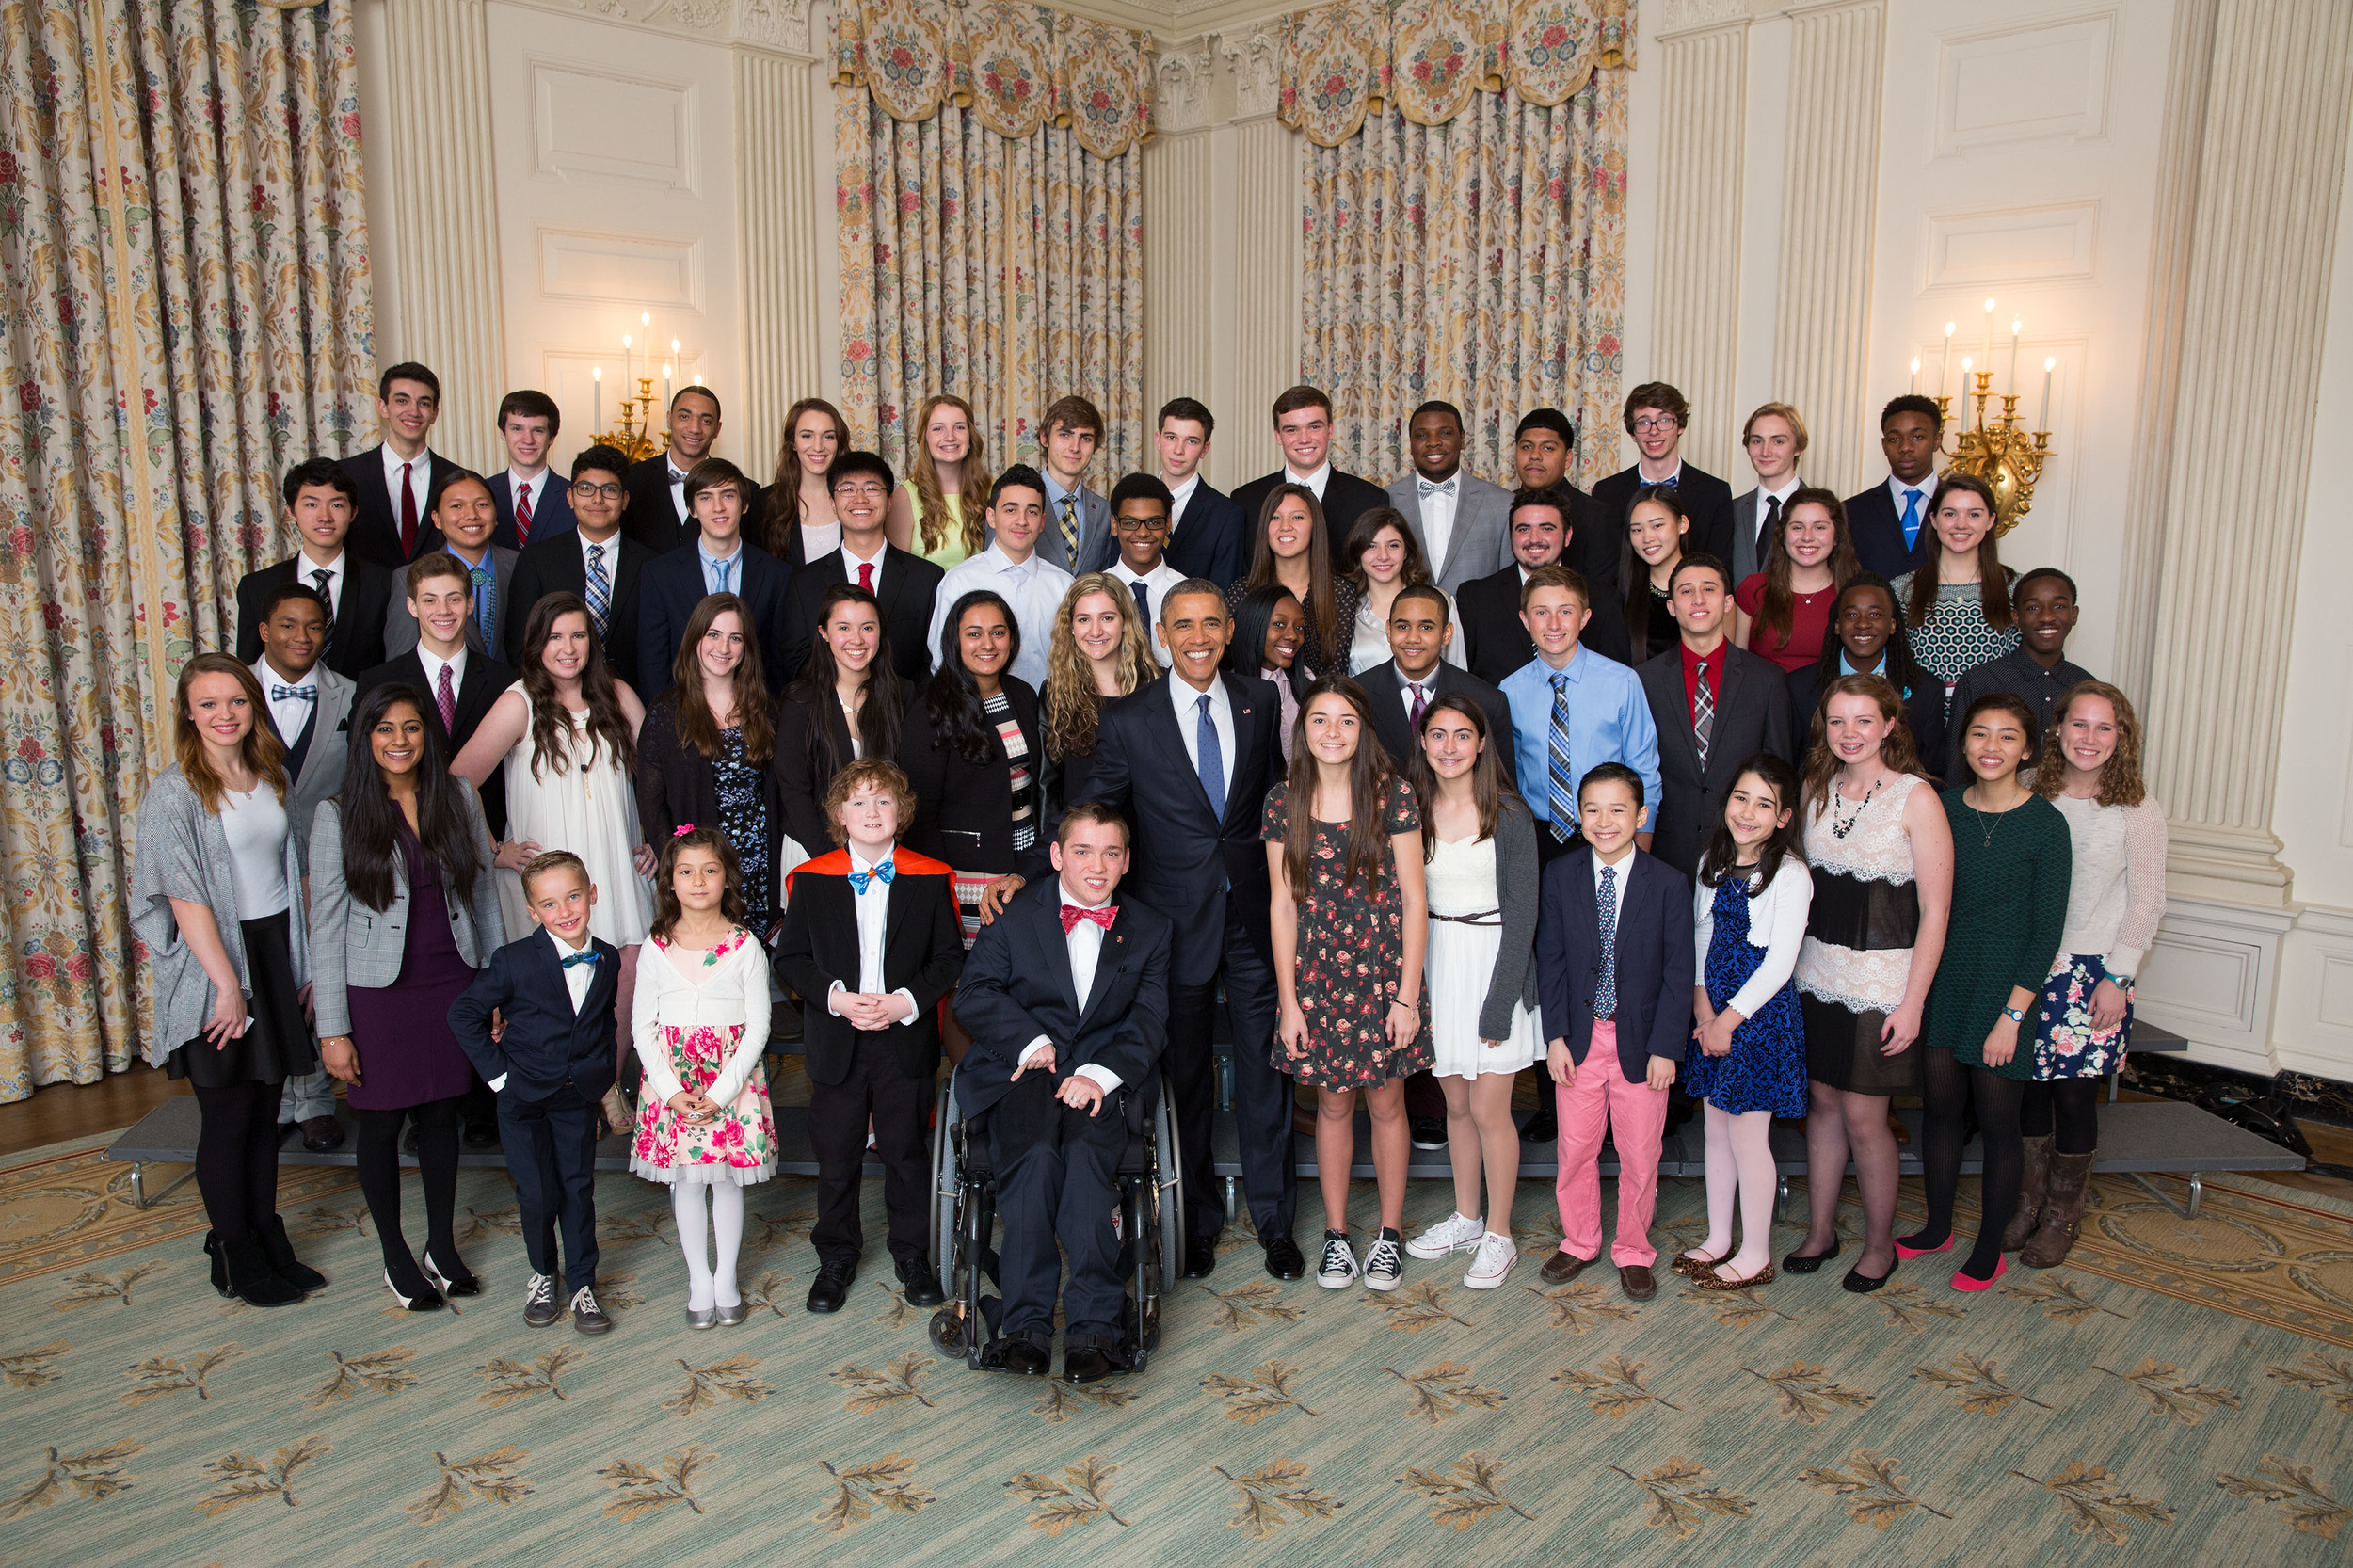 President Obama photo op with winners of 2015 White House Student Film Festival Official White House Photo by Pete Souza front.jpg